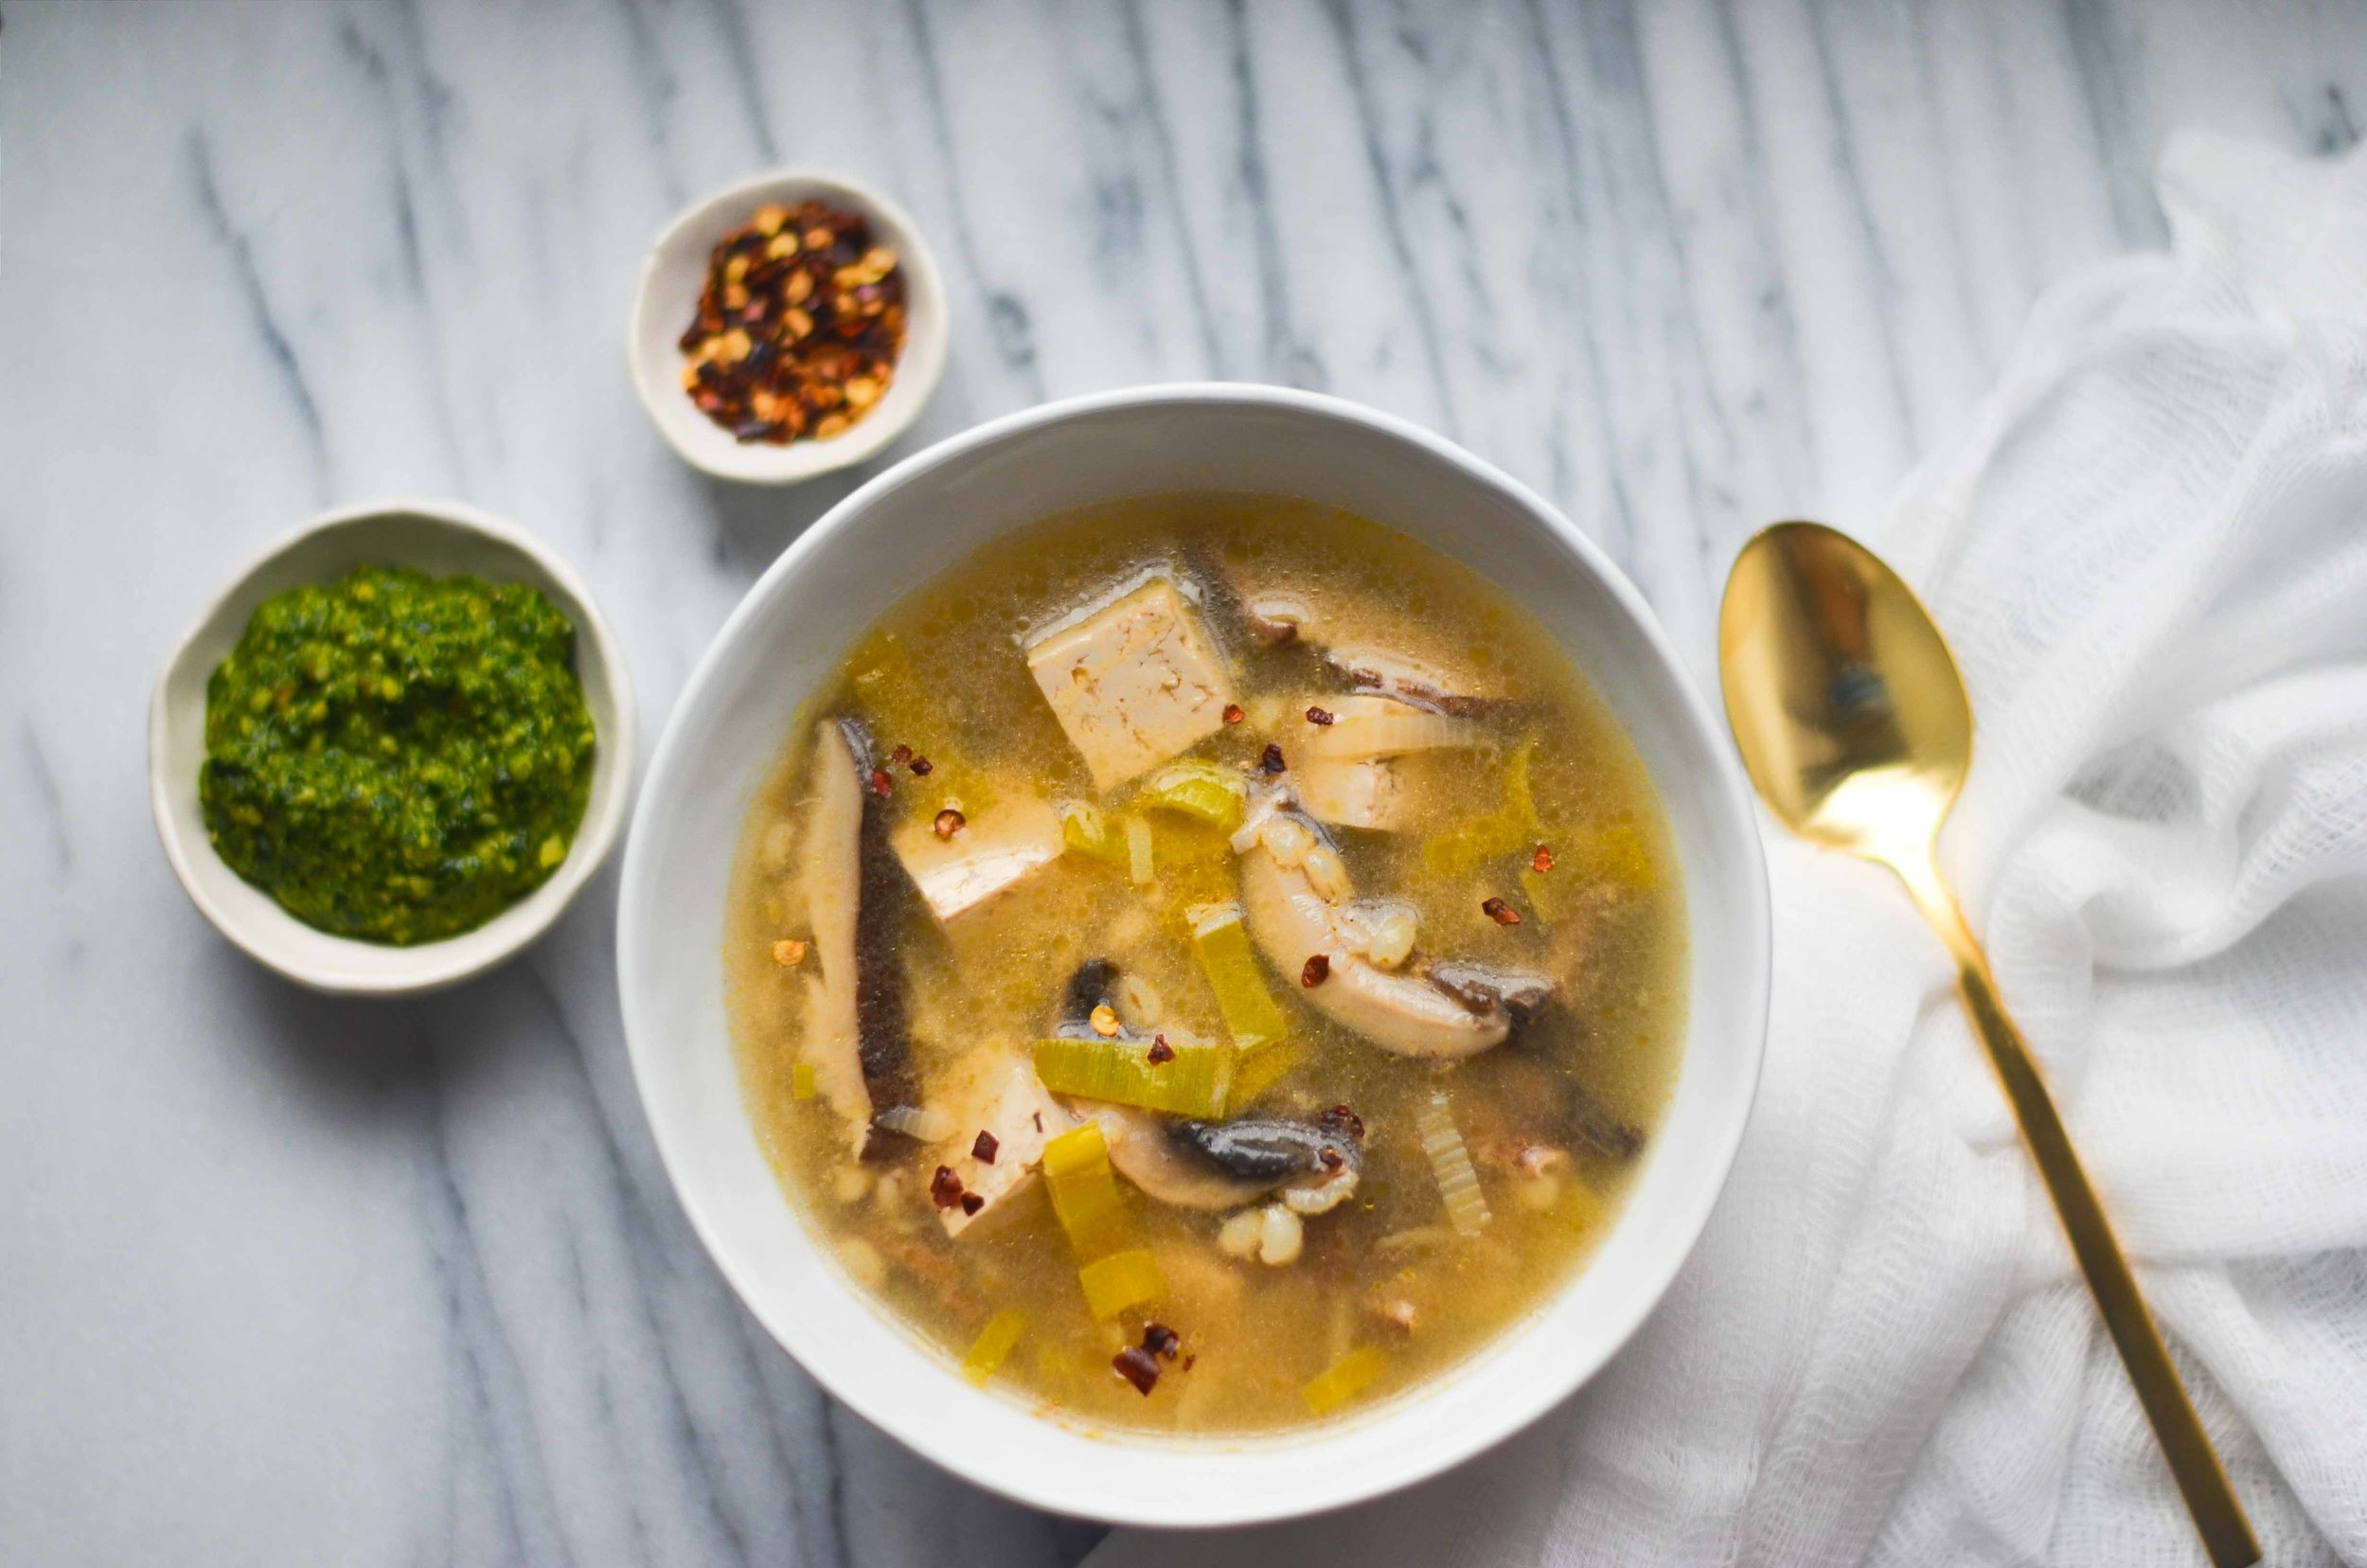 mushroom + leek broth soup - fried parsley